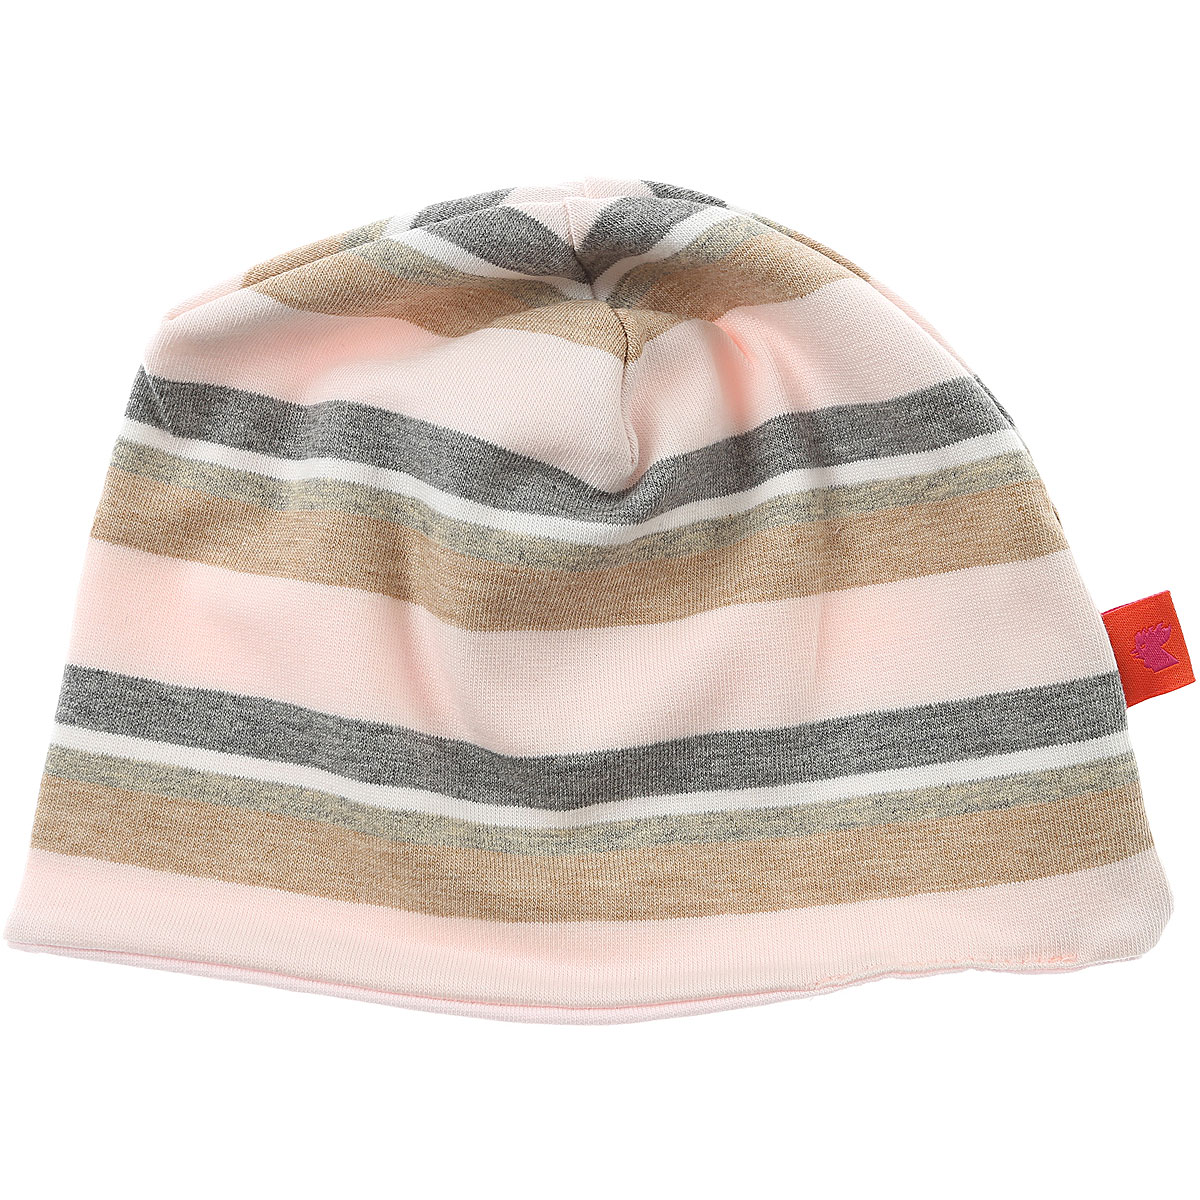 Gallo Baby Hats for Girls On Sale in Outlet, Pink, Cotton, 2019, 11M 6M